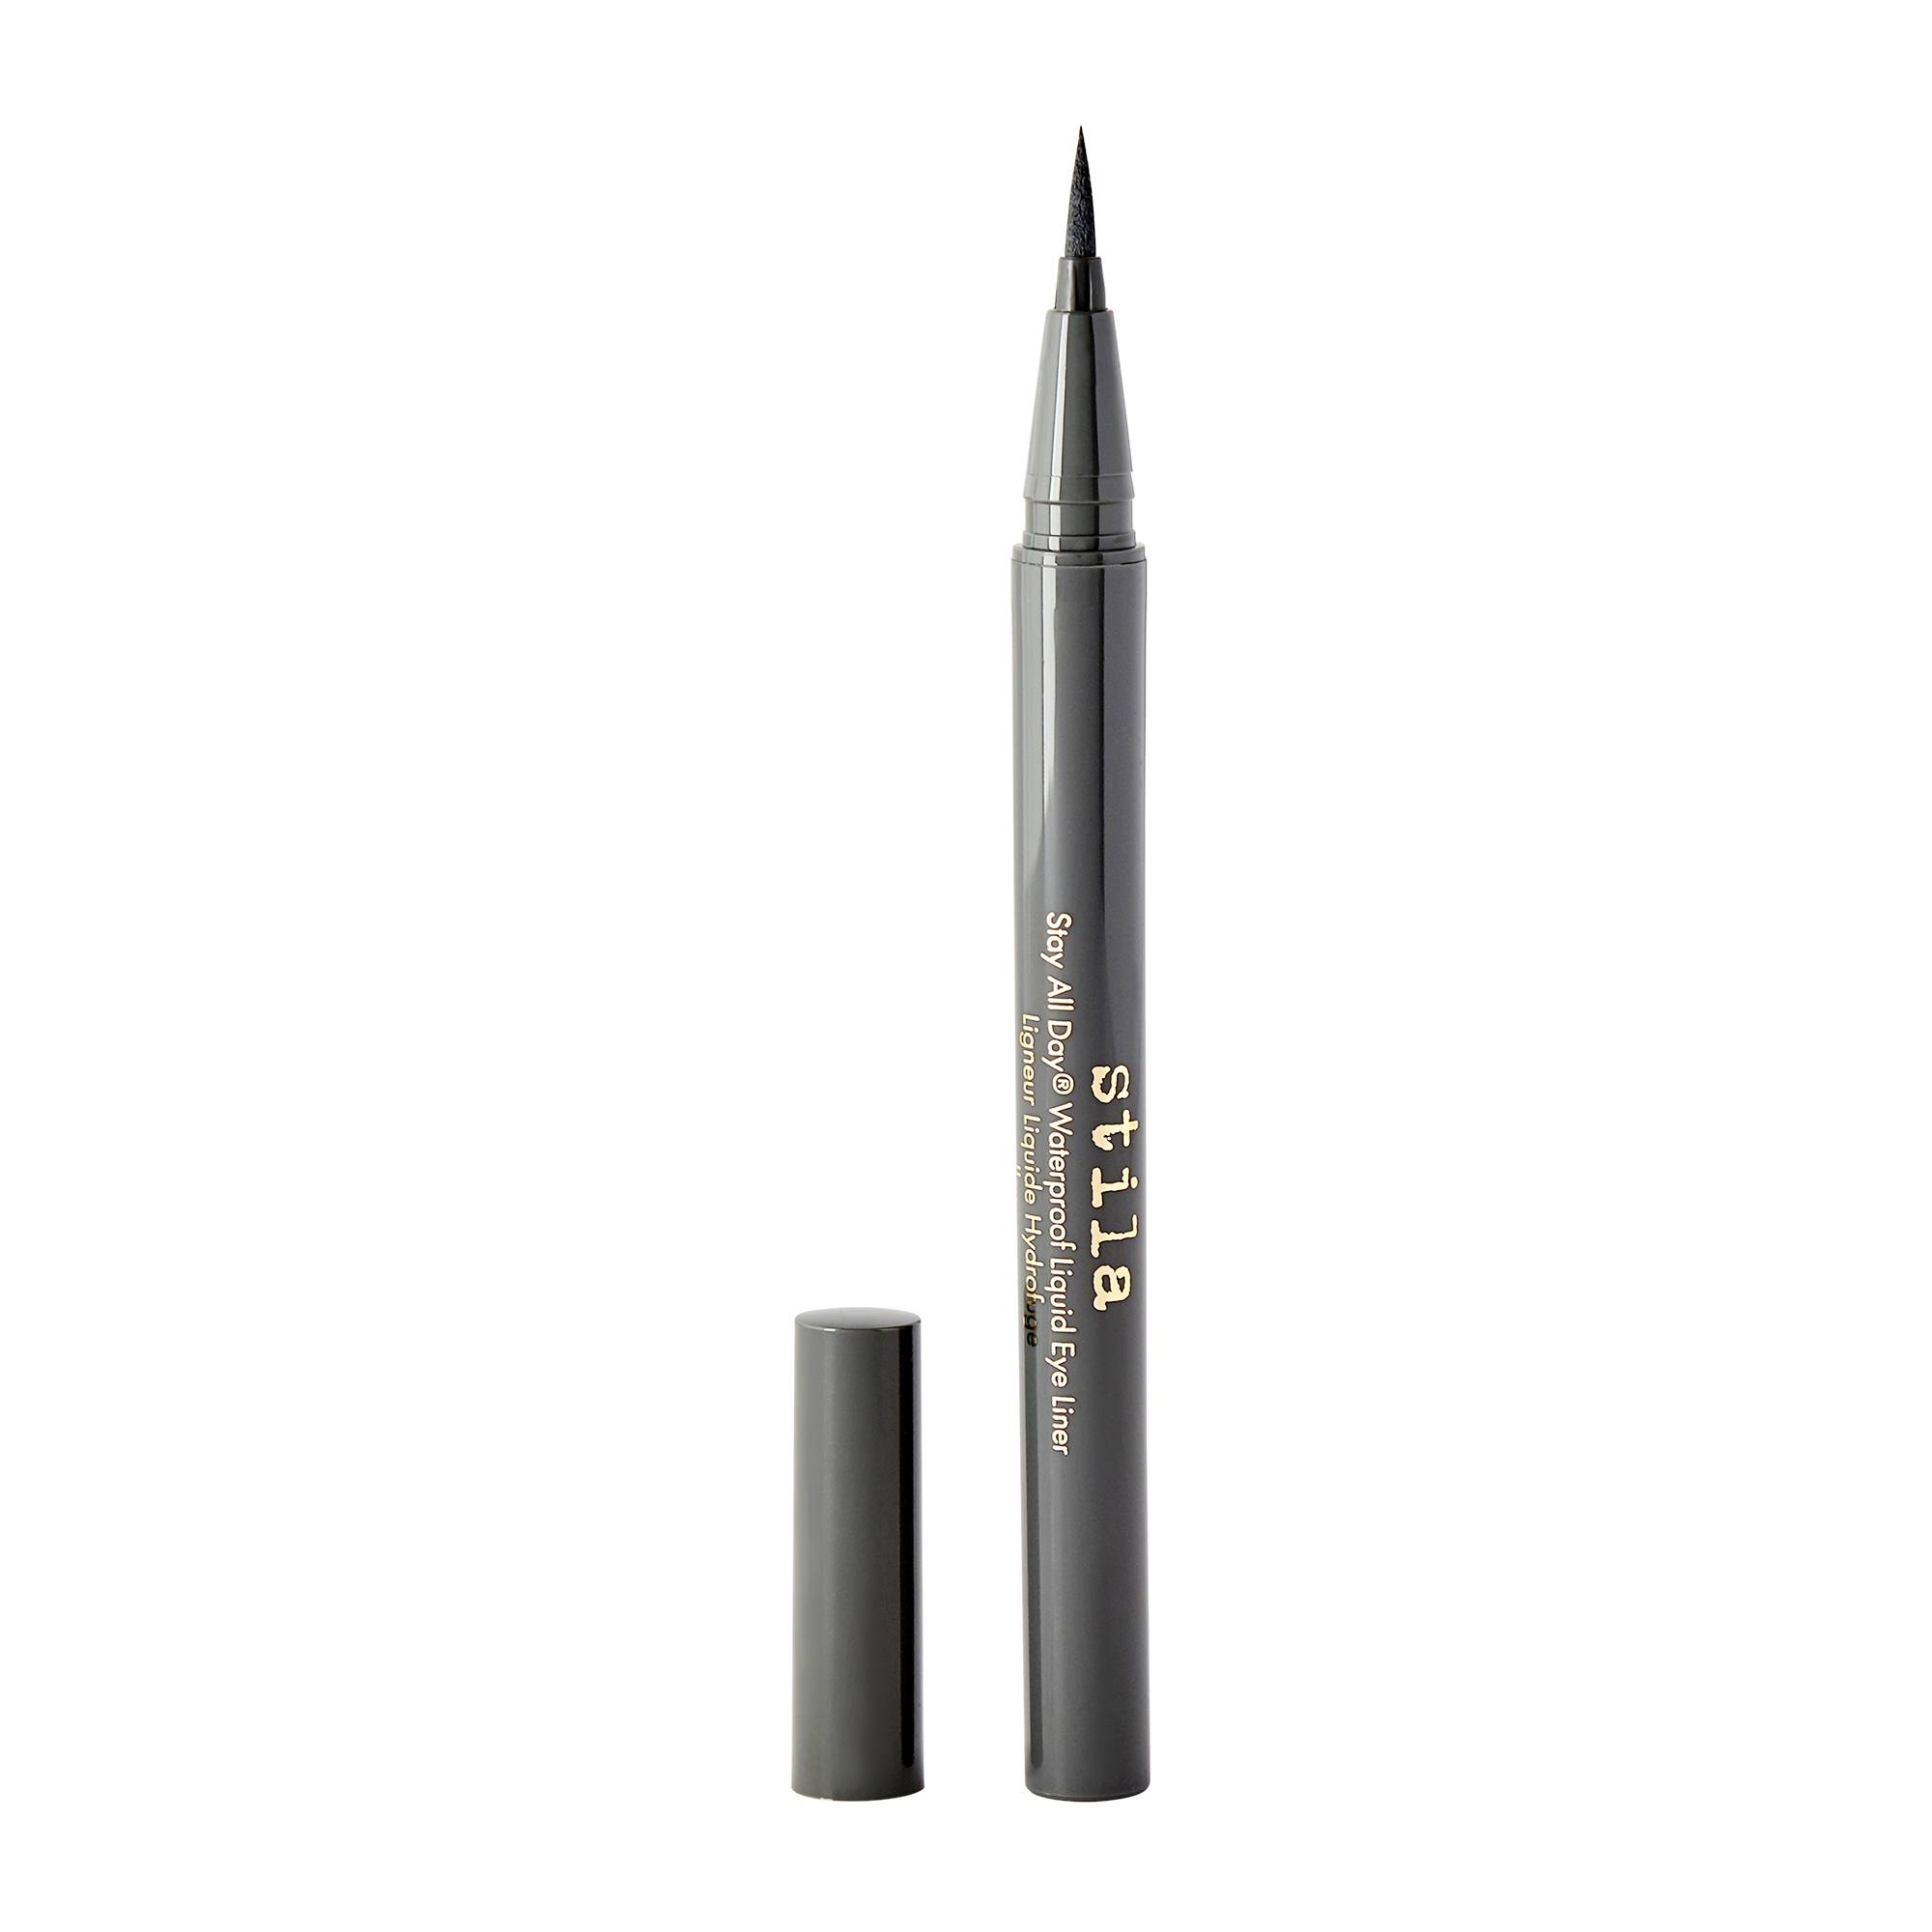 Stila Stay All Day Waterproof Liquid Eye Liner Alloy 0.5ml